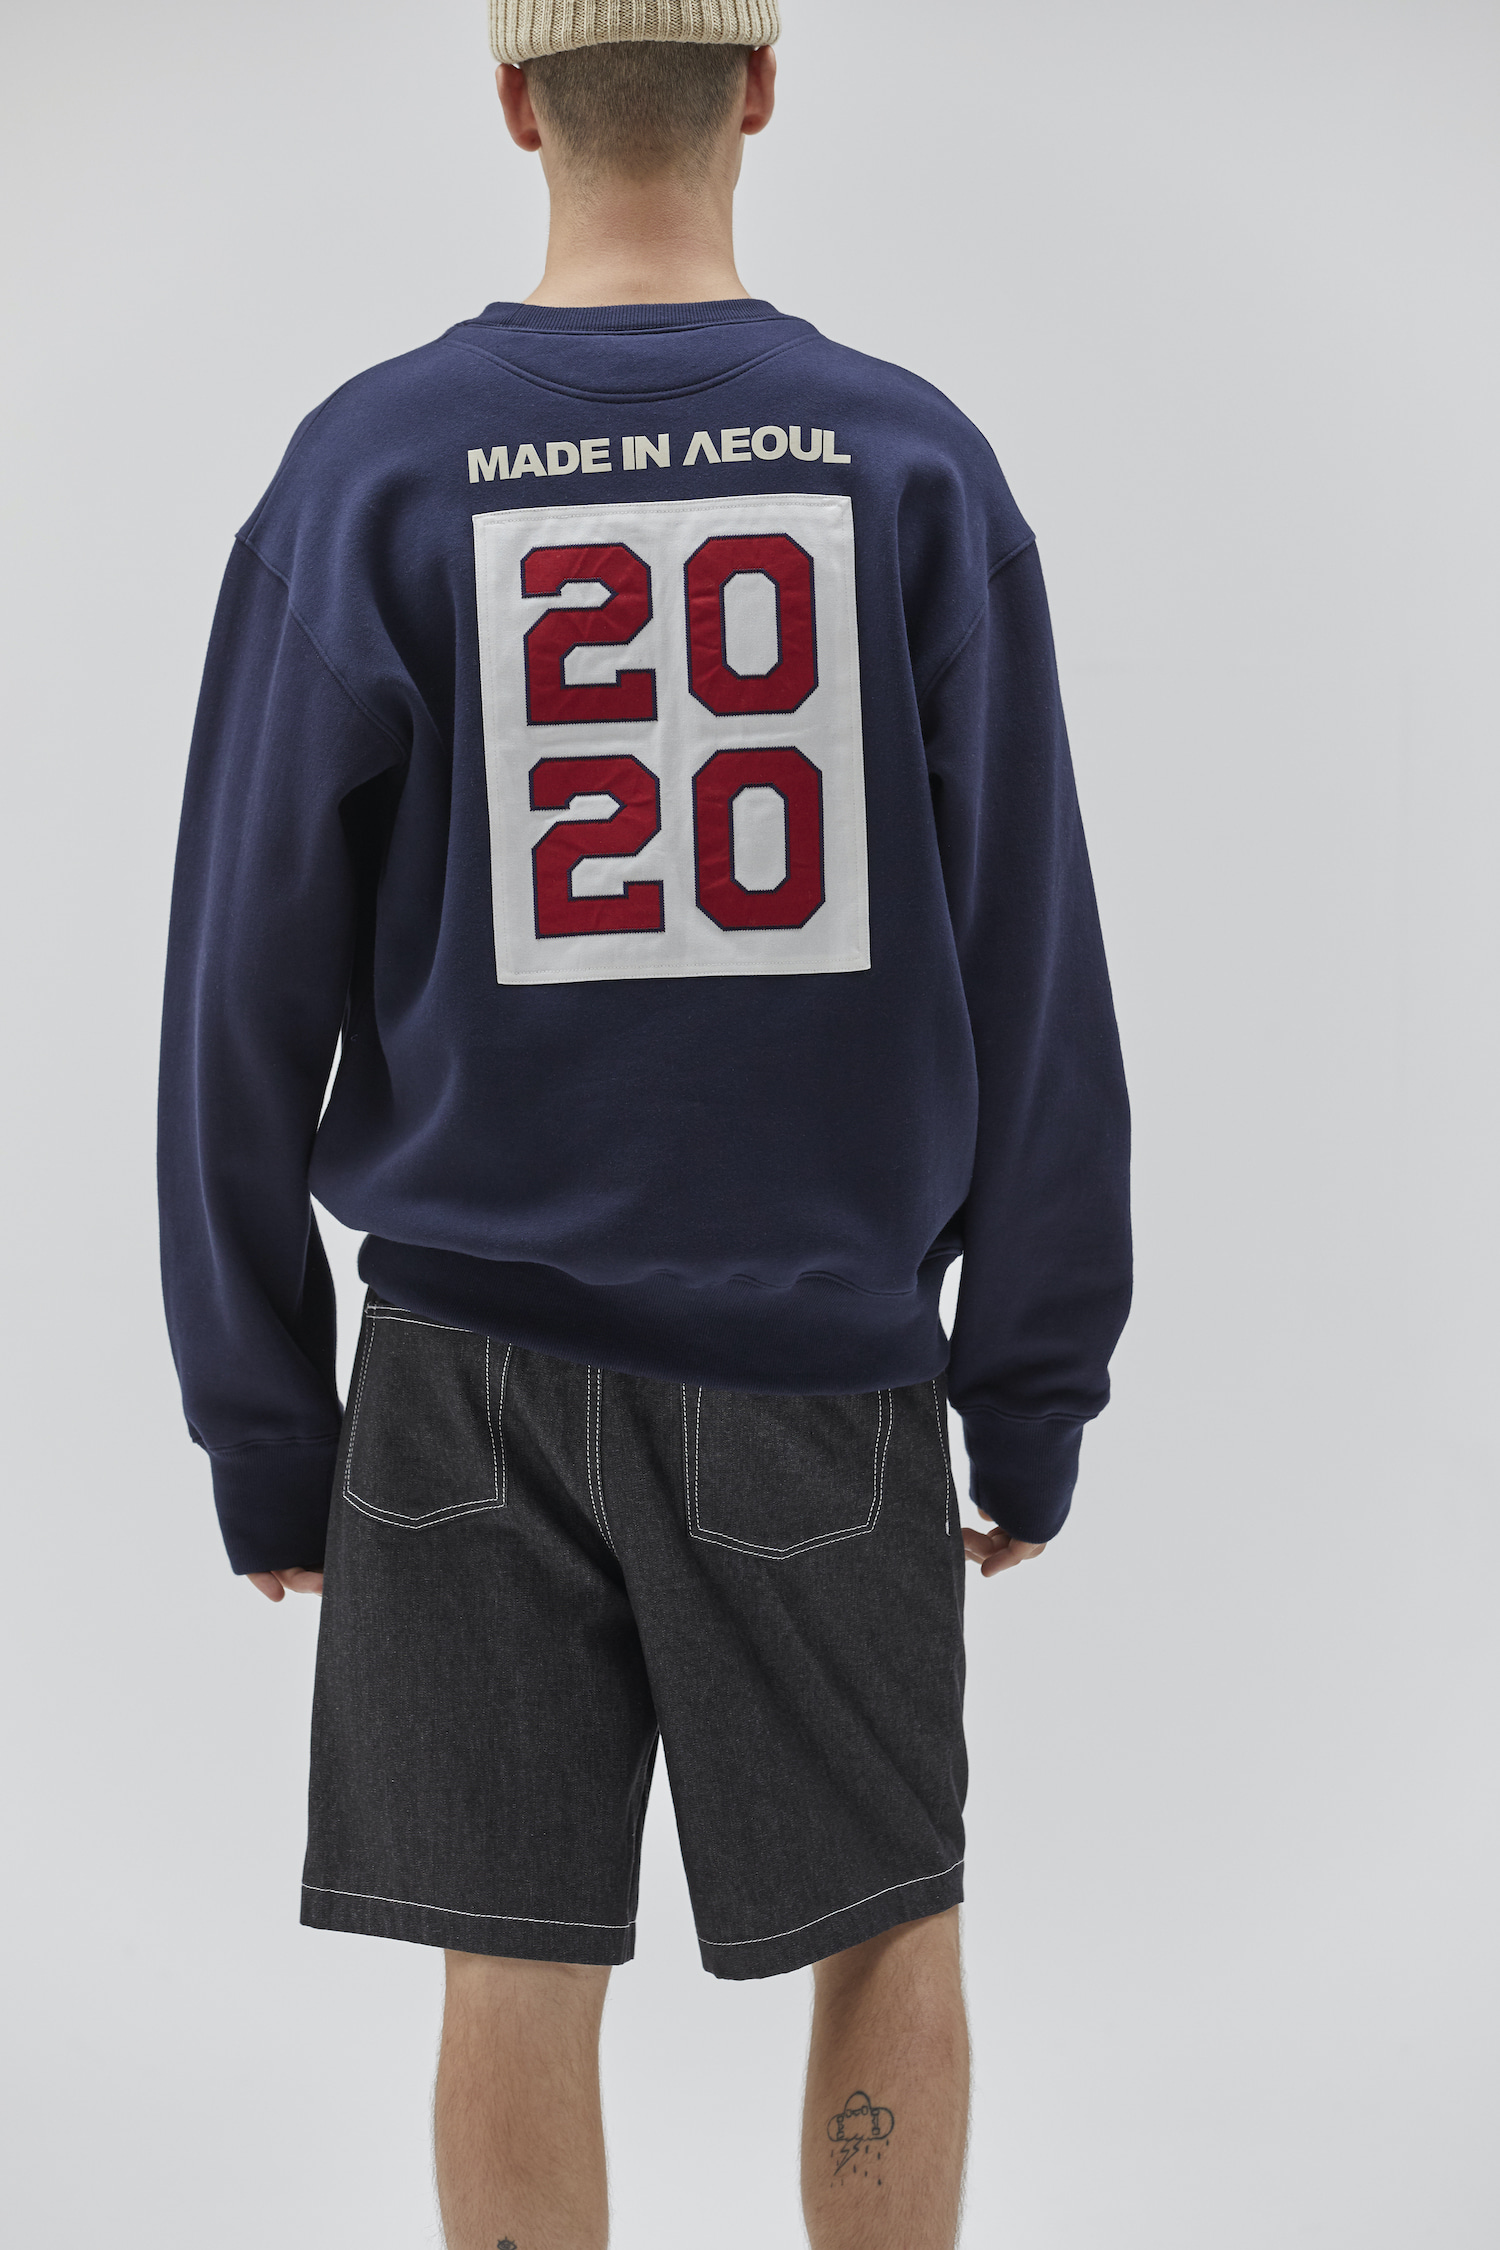 [10/28 예약배송] MADE IN SEOUL 2020 SWEATSHIRT NAVY